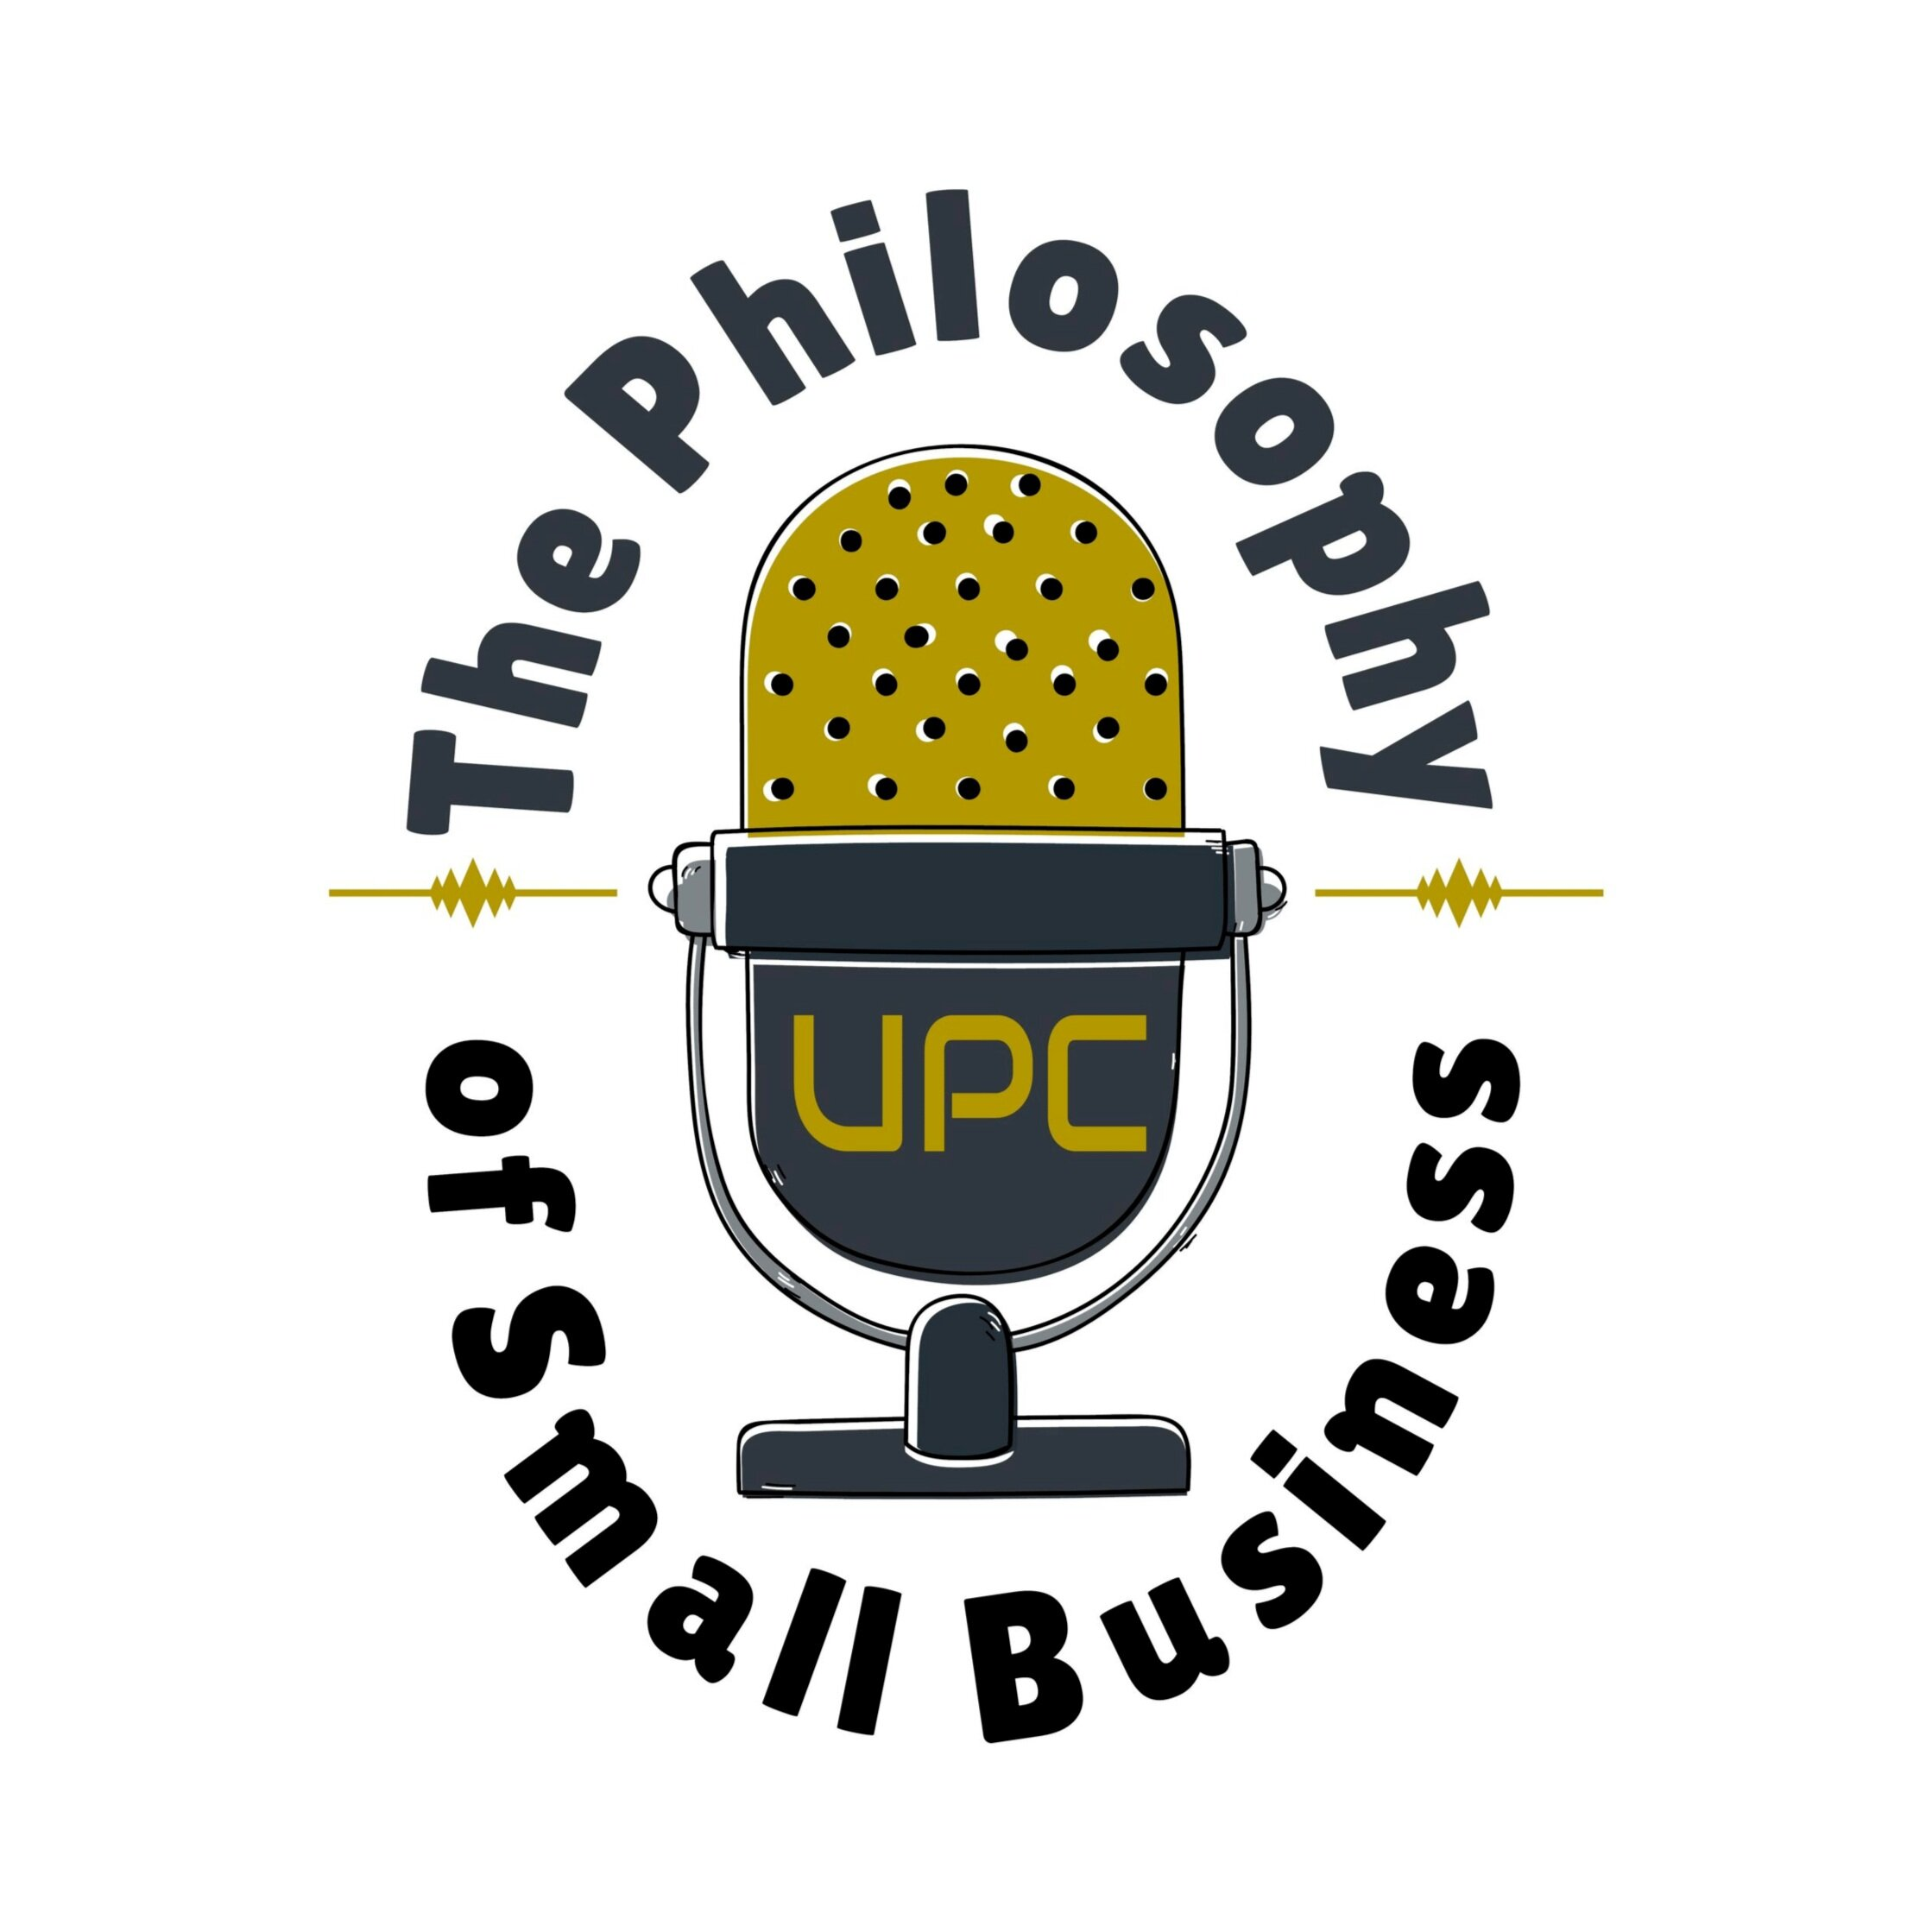 About Podcast - The Philosophy of Small Business is a podcast from United Partnership Consulting hosted by Rajan Taylor. This podcast is for business owners that want to make a difference in the world we live in. You will learn business tips and hear about businesses that are winning and losing and what you can learn from both sides. The only goal of this Podcast is to help YOU run your business.iTunes - UPC PodcastSpotify - UPC Podcast